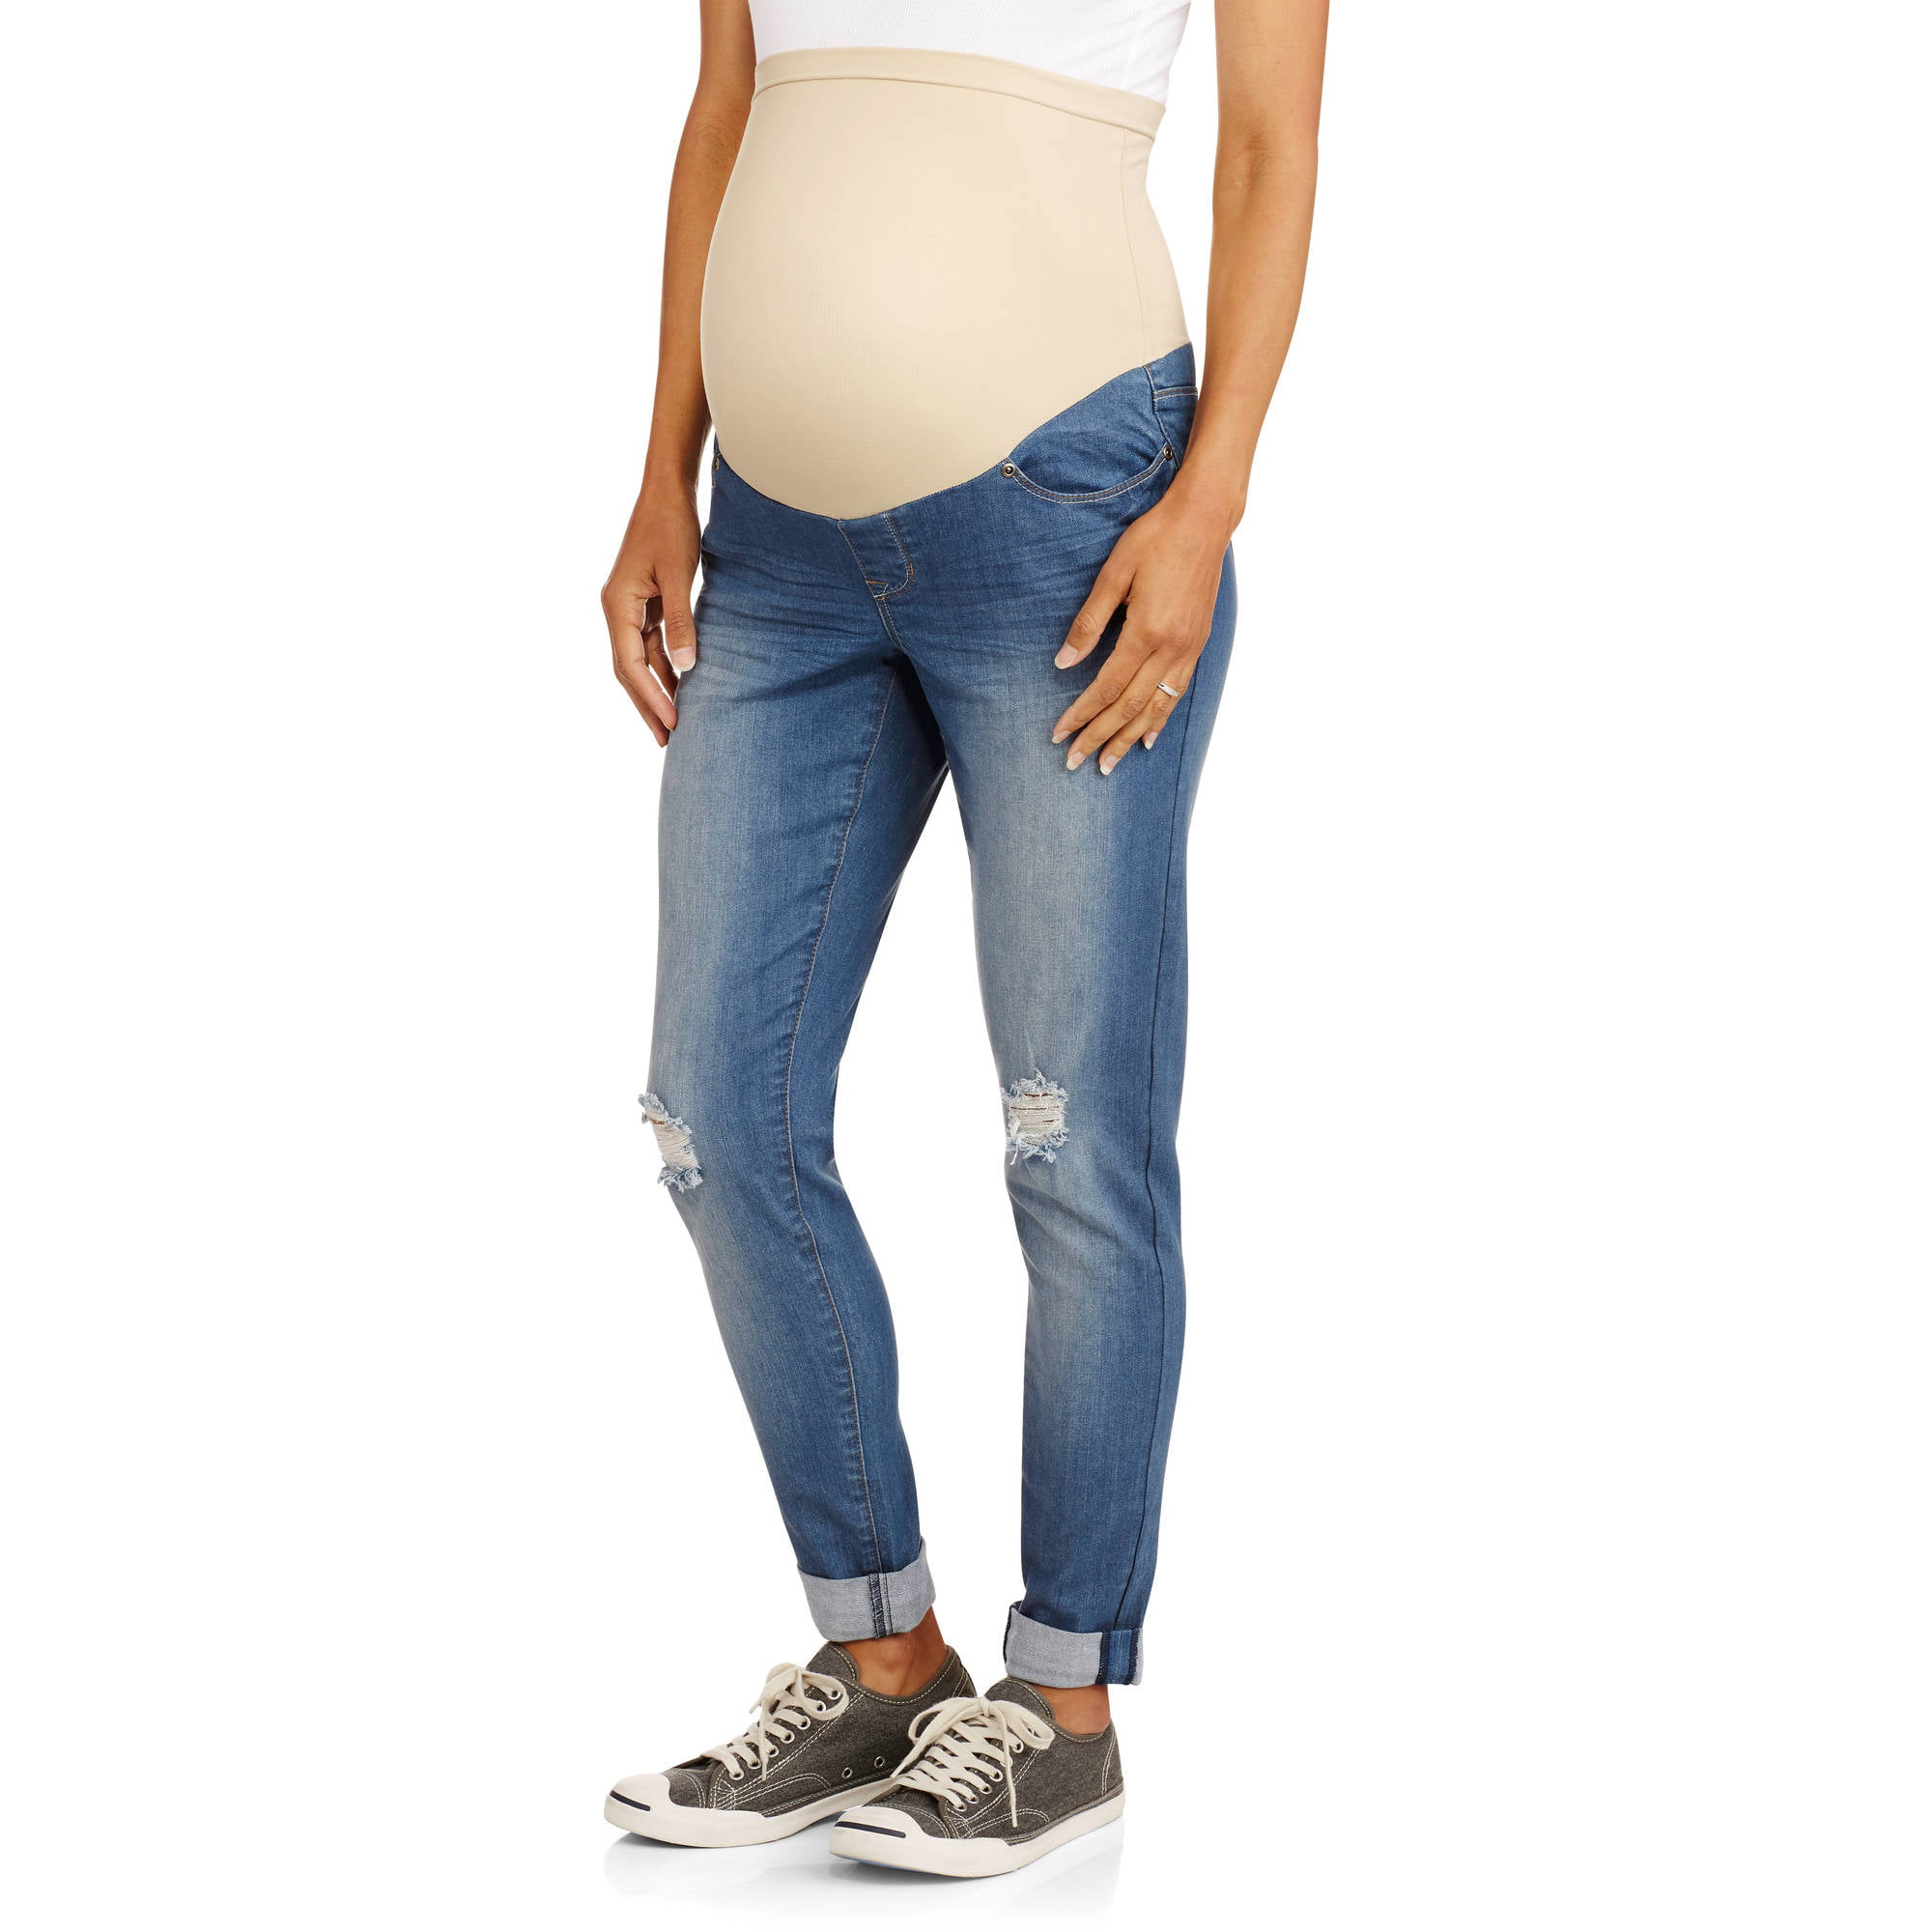 b3d8cae87572f Oh! Mamma - Full Panel Maternity Leggings -- Available in Plus Size -  Walmart.com